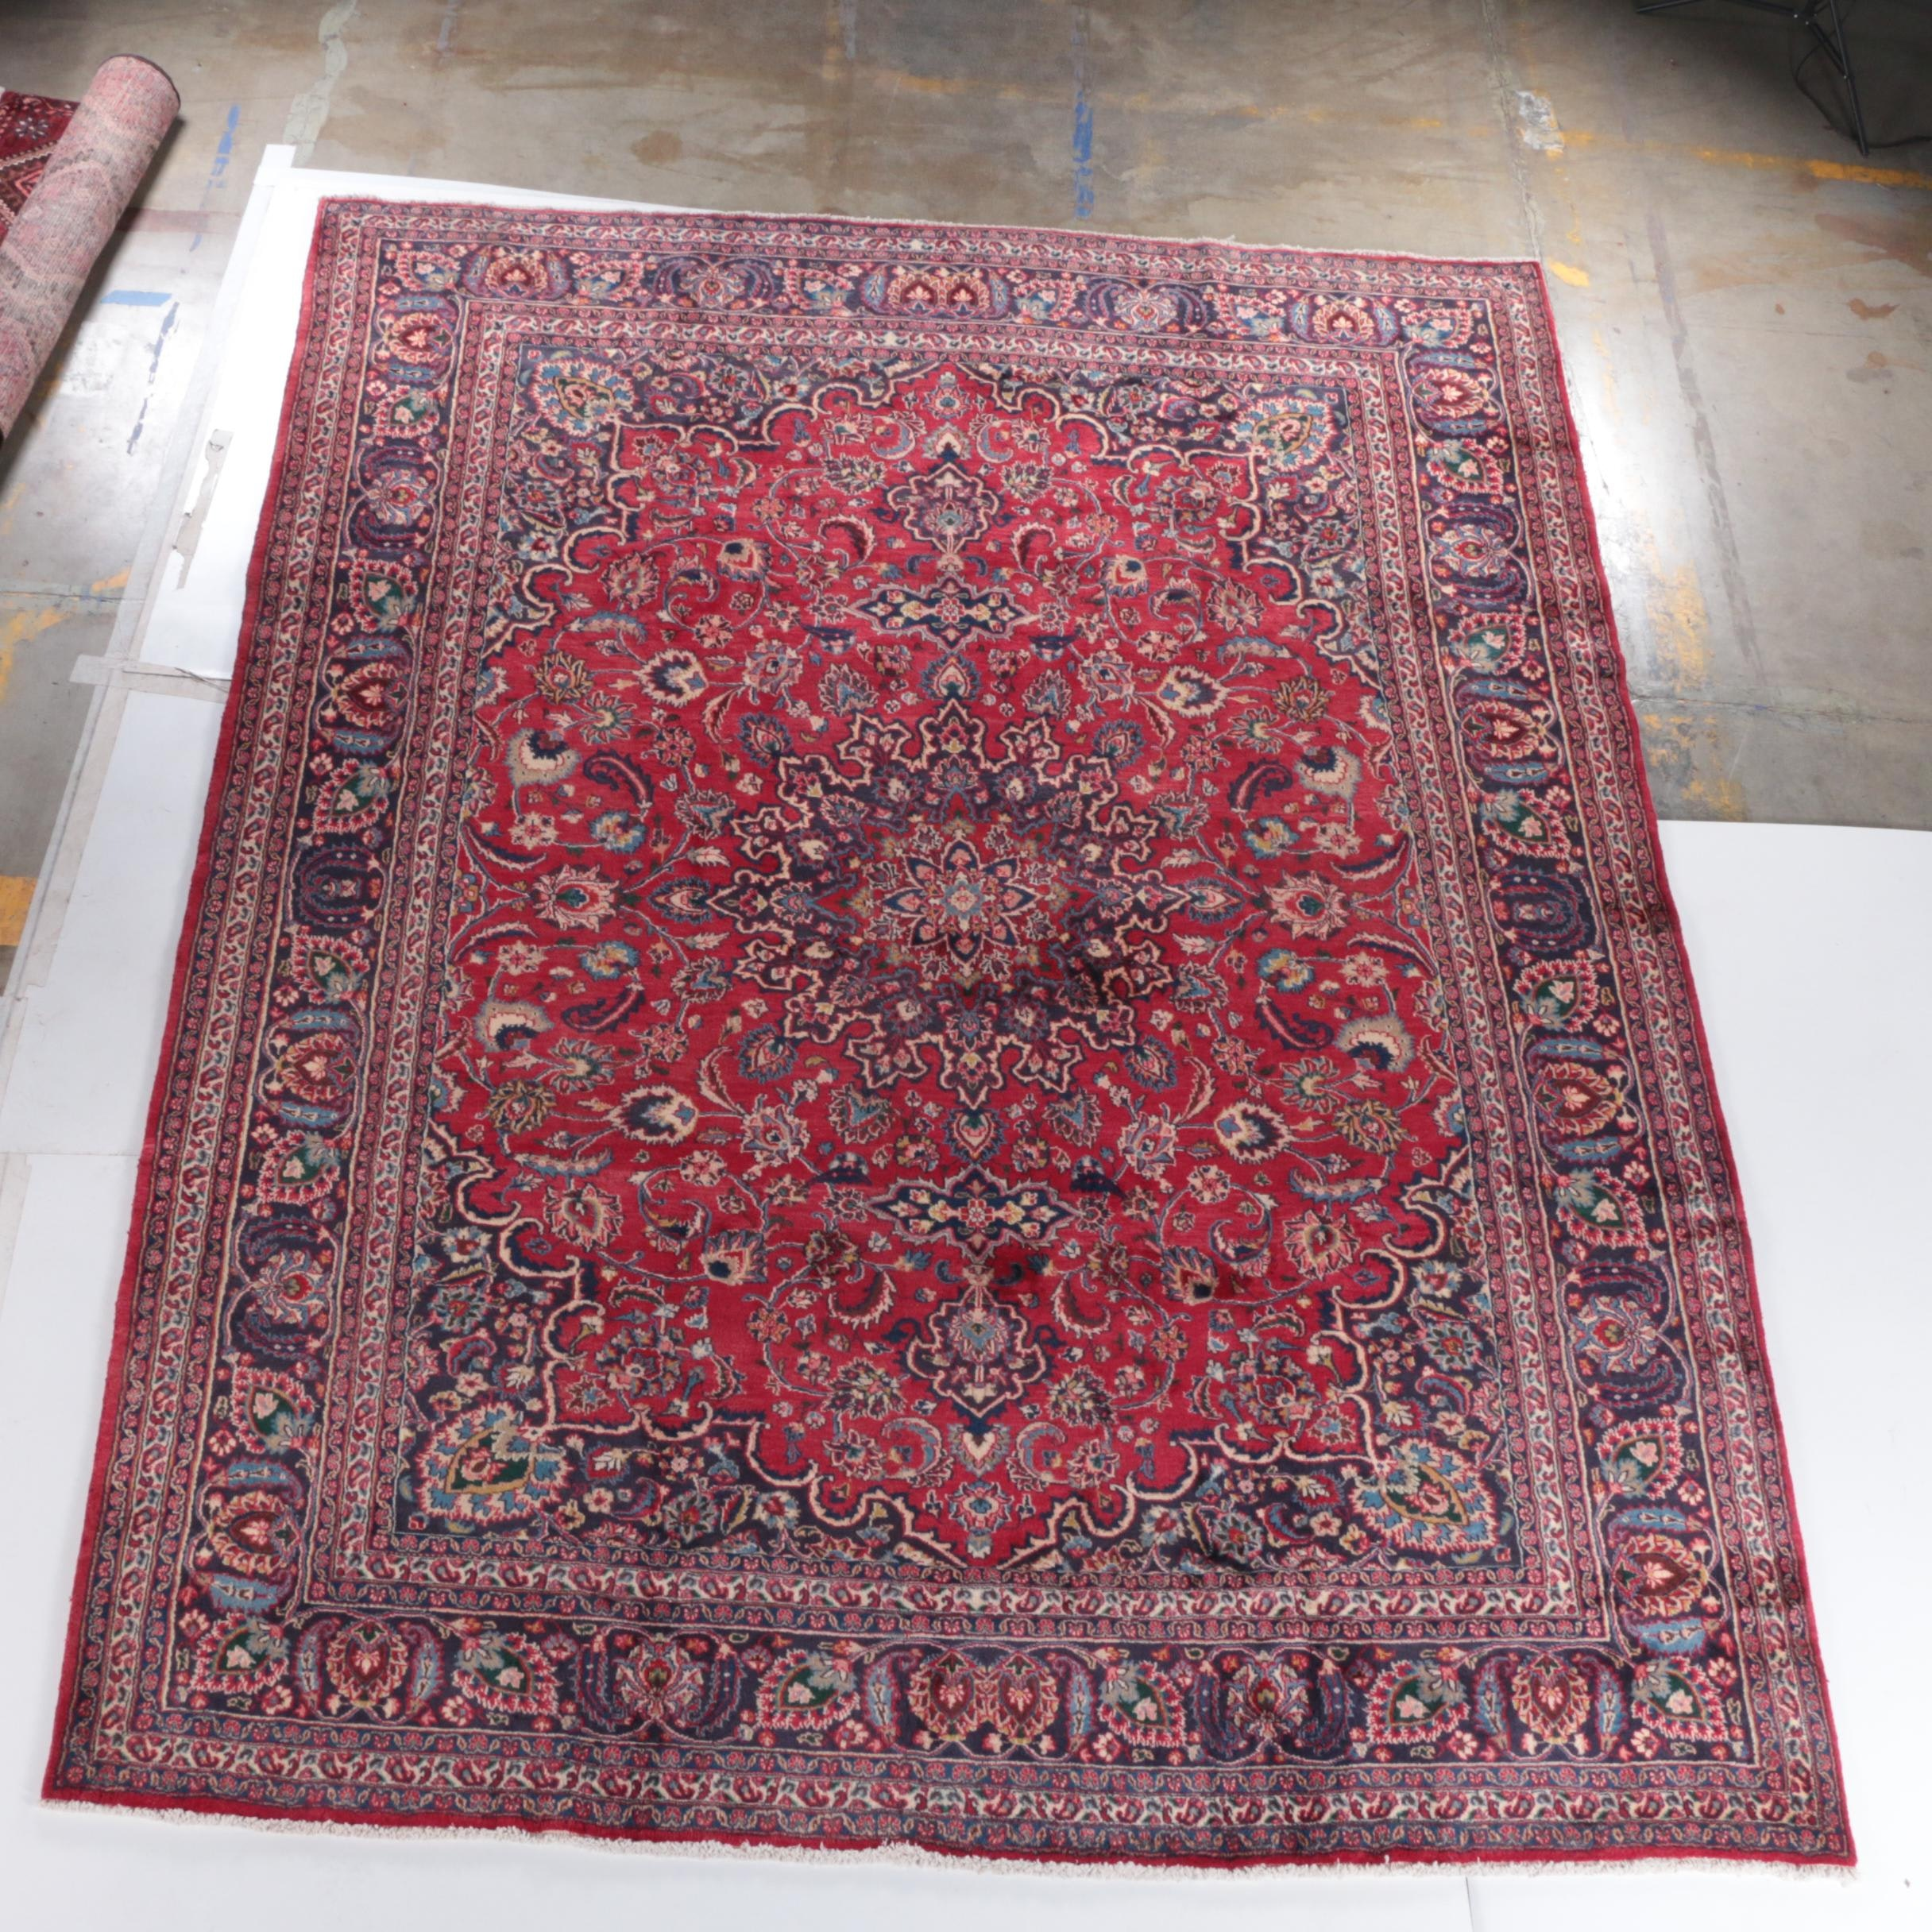 Finely Hand-Knotted Kashan Wool Area Rug